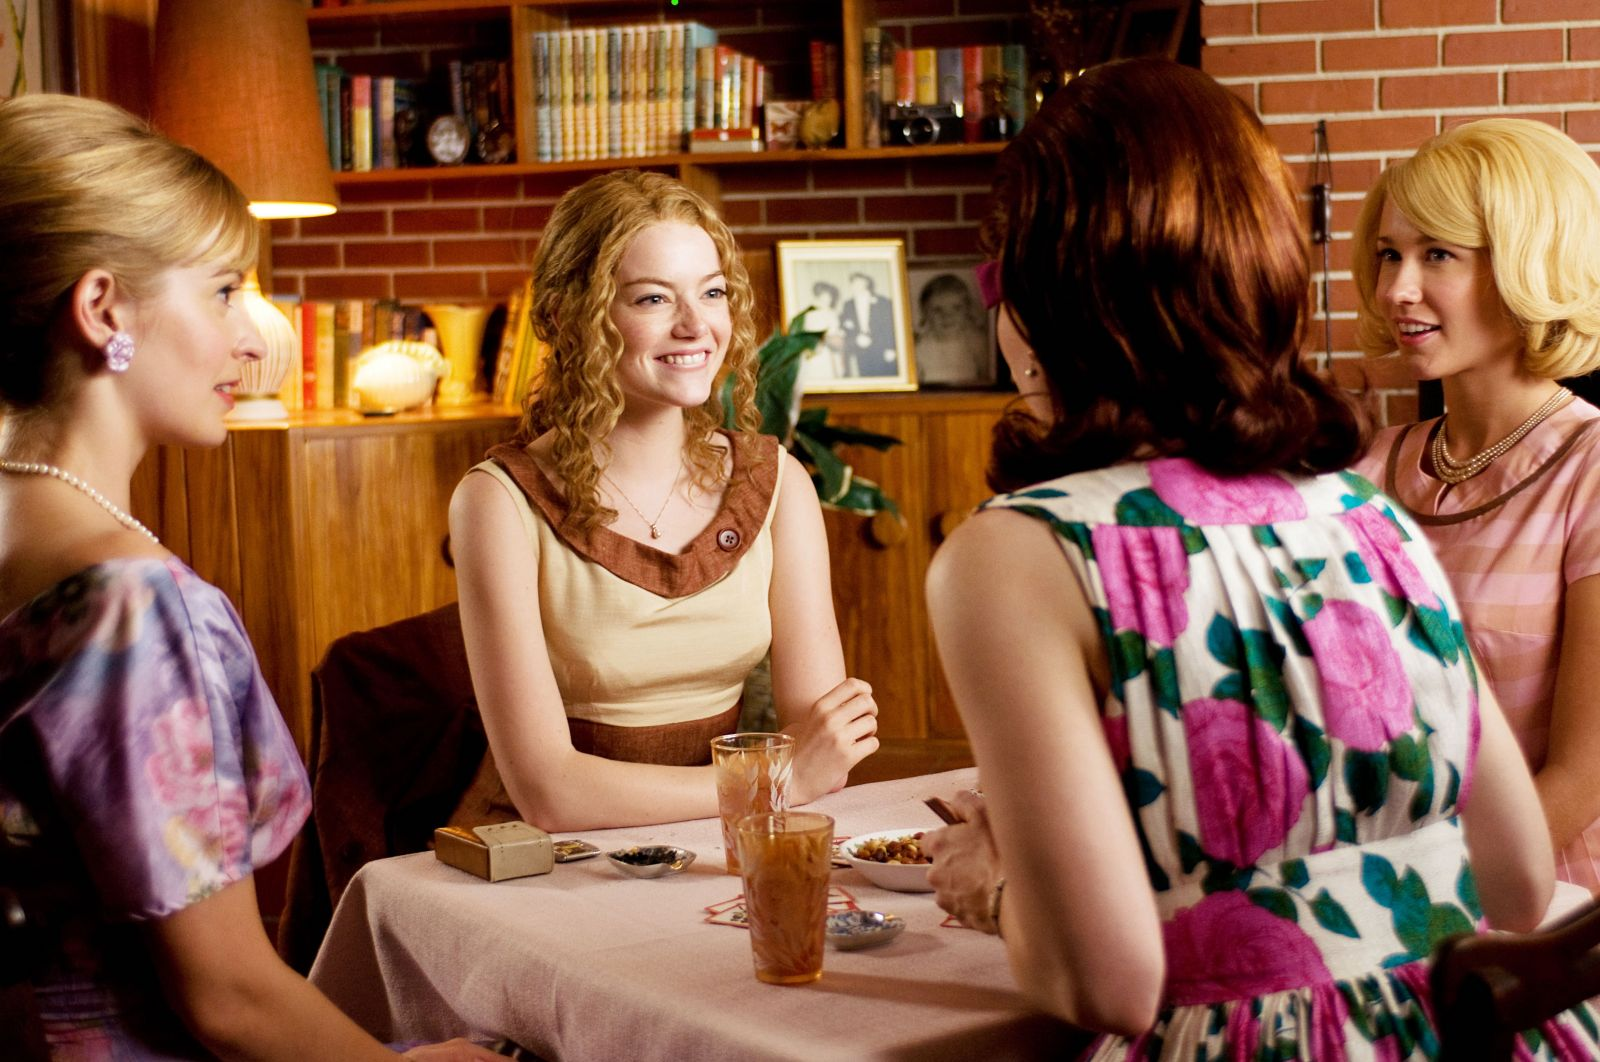 Movies The Help 2011